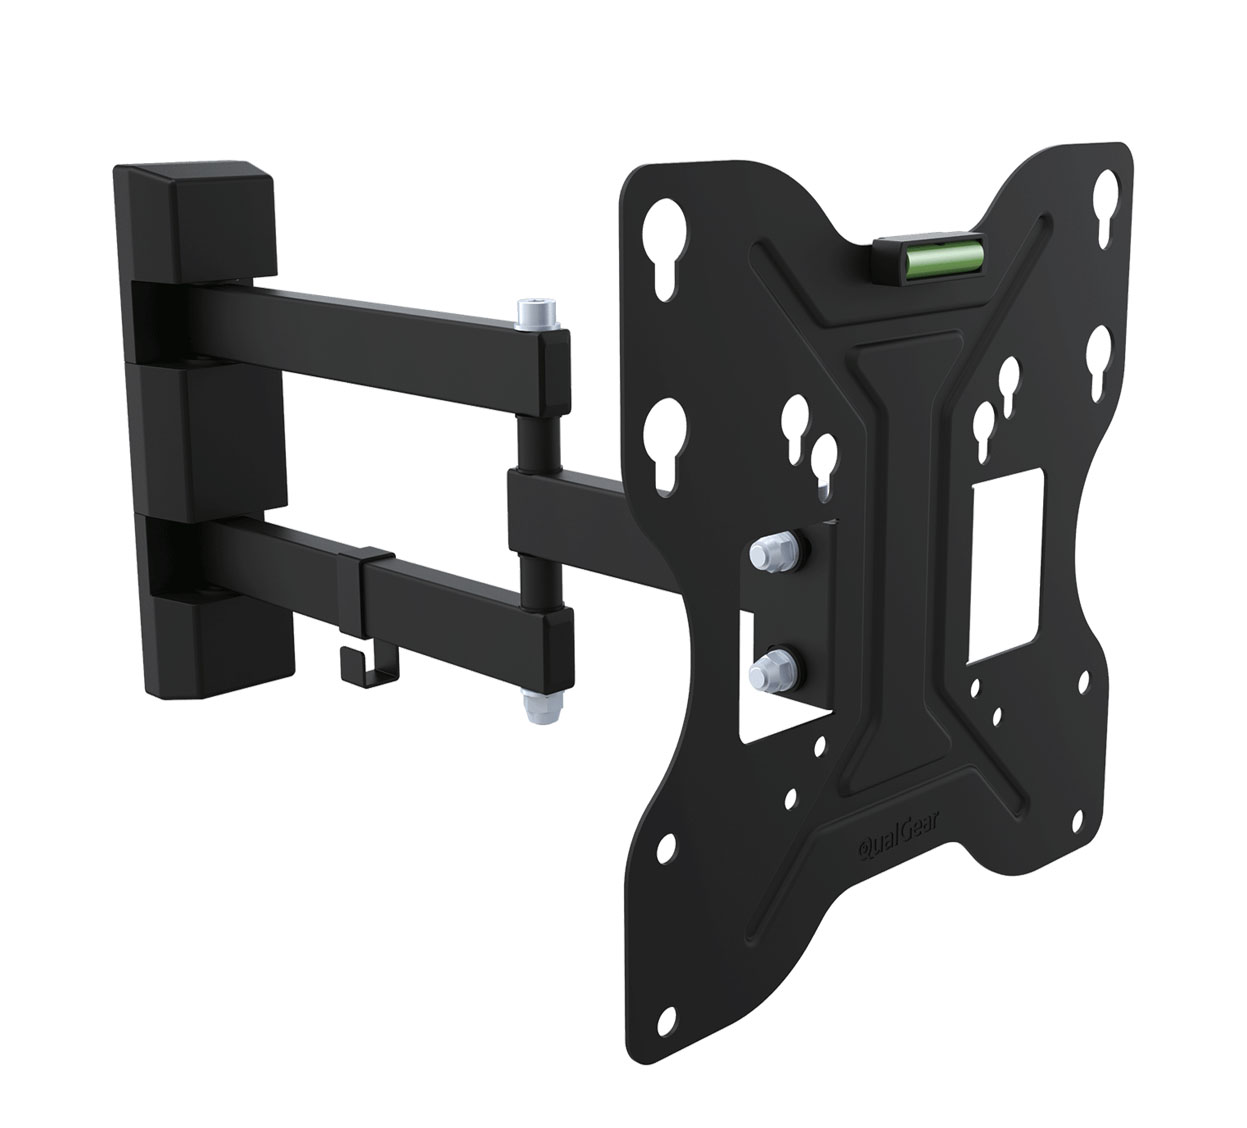 QualGear QG-TM-006-BLK 23-Inch to 42-Inch Universal Low Profile Tilting Wall Mount LED TVs, Black